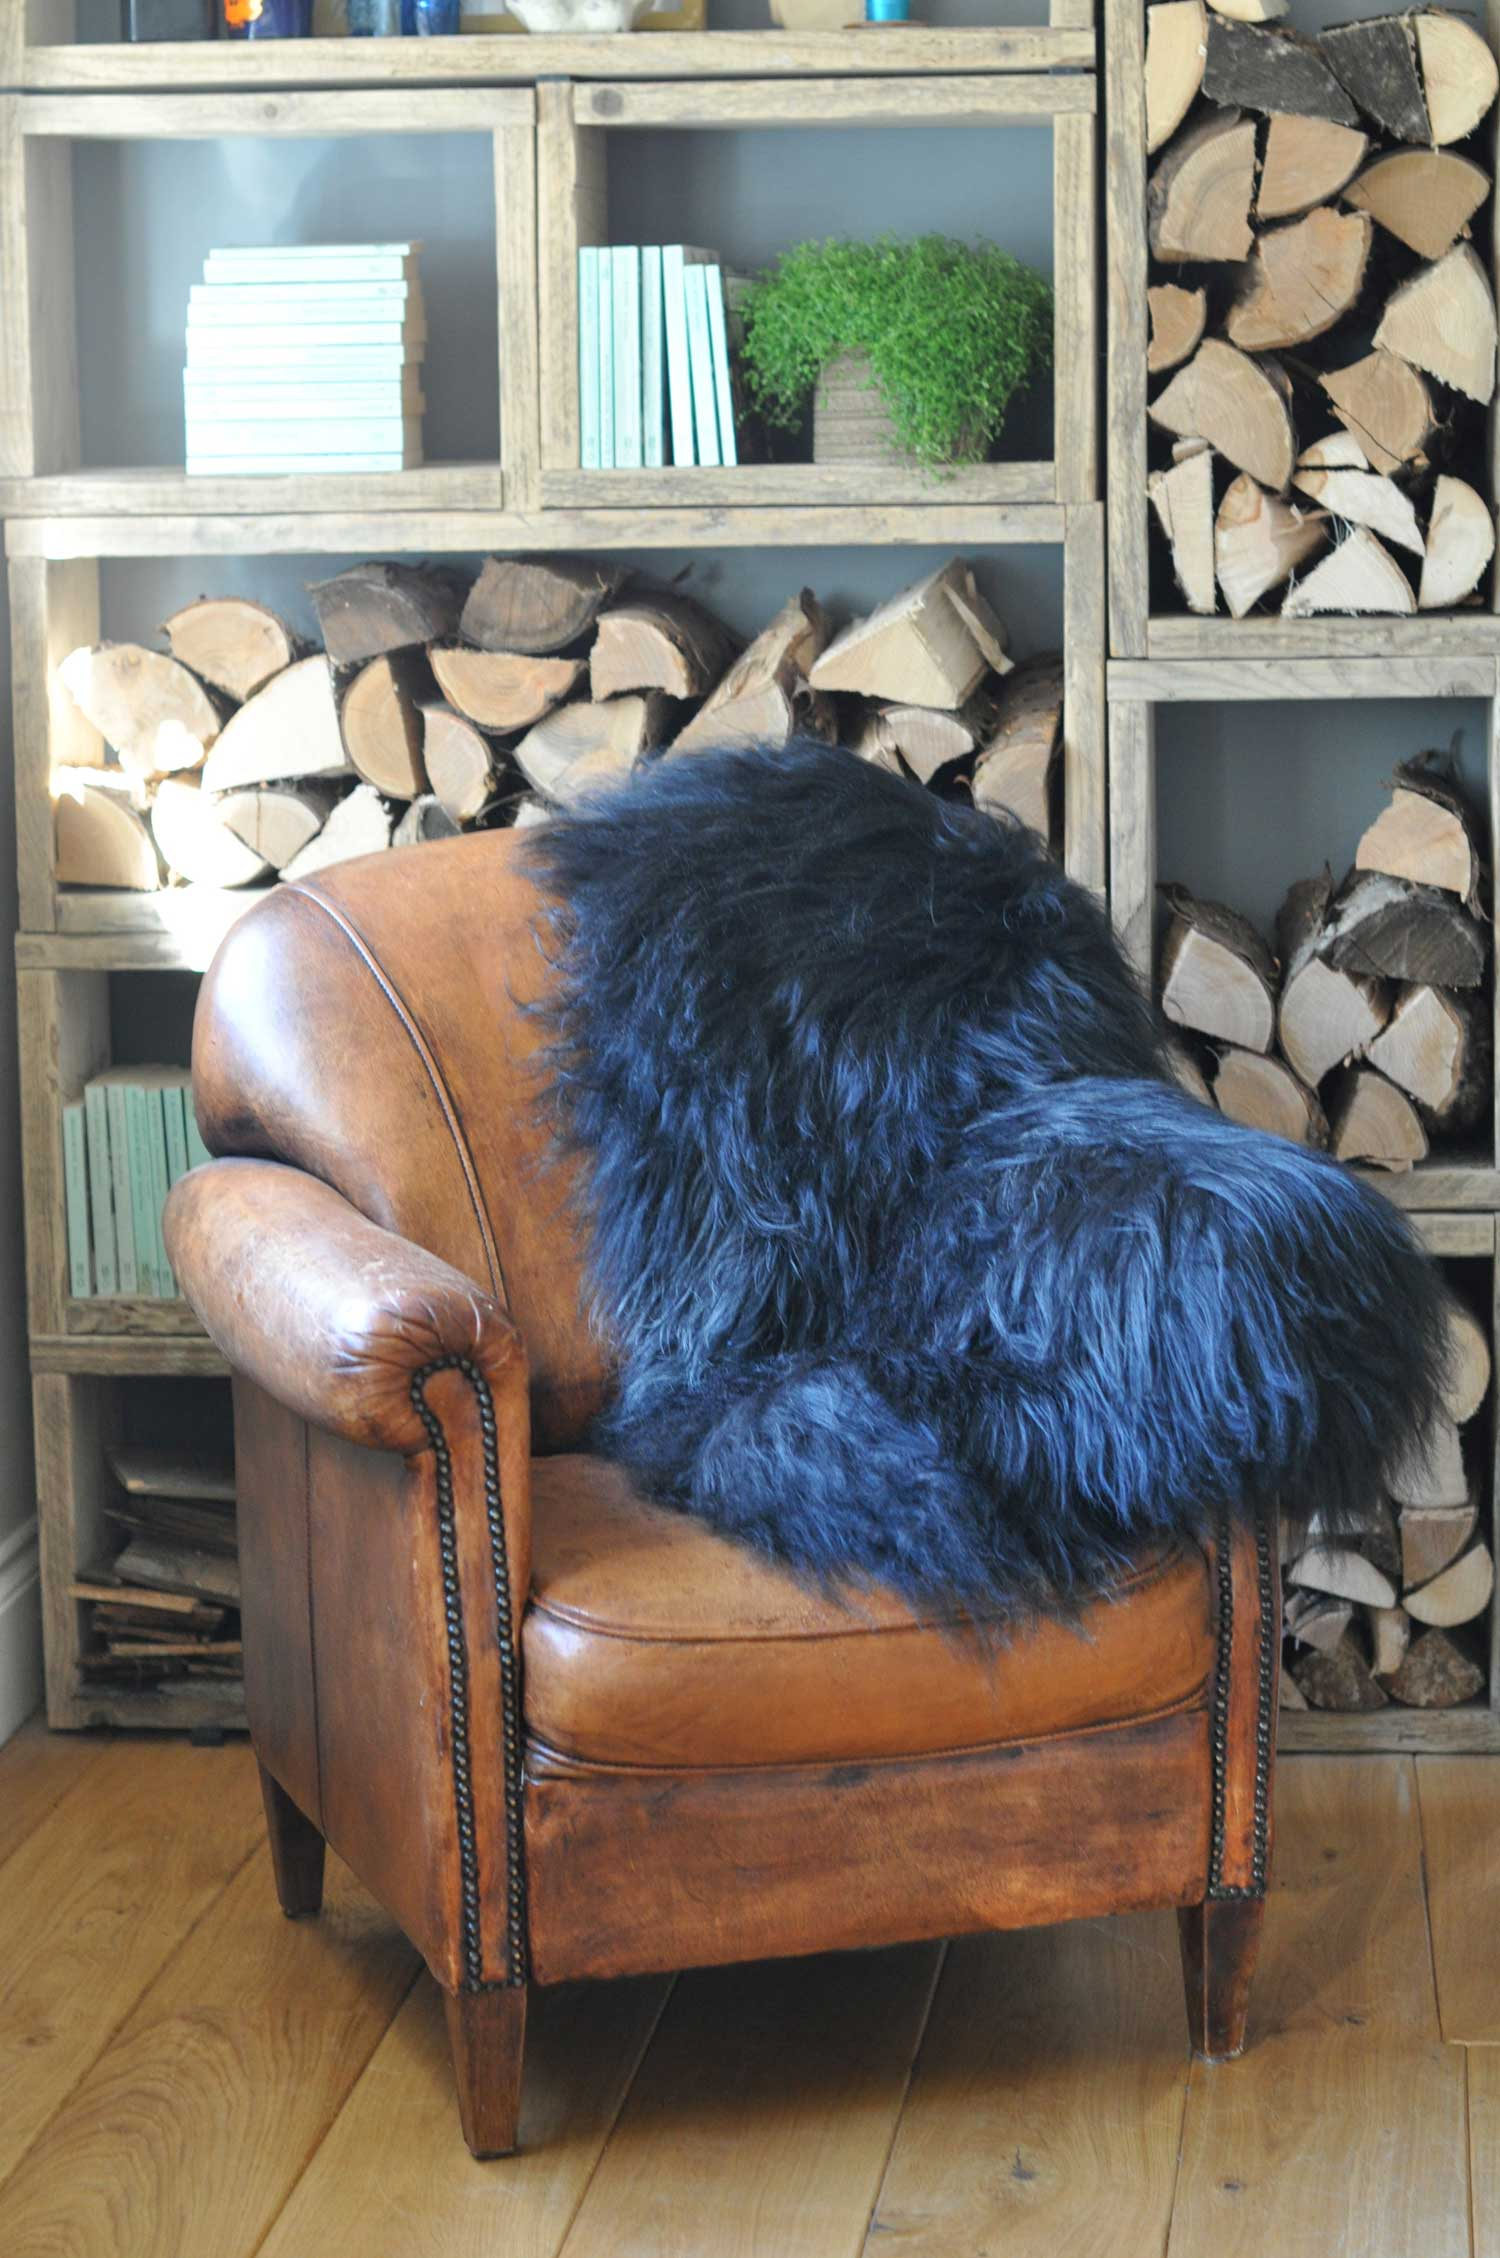 black-Icelandic-Sheep-skins-rugs